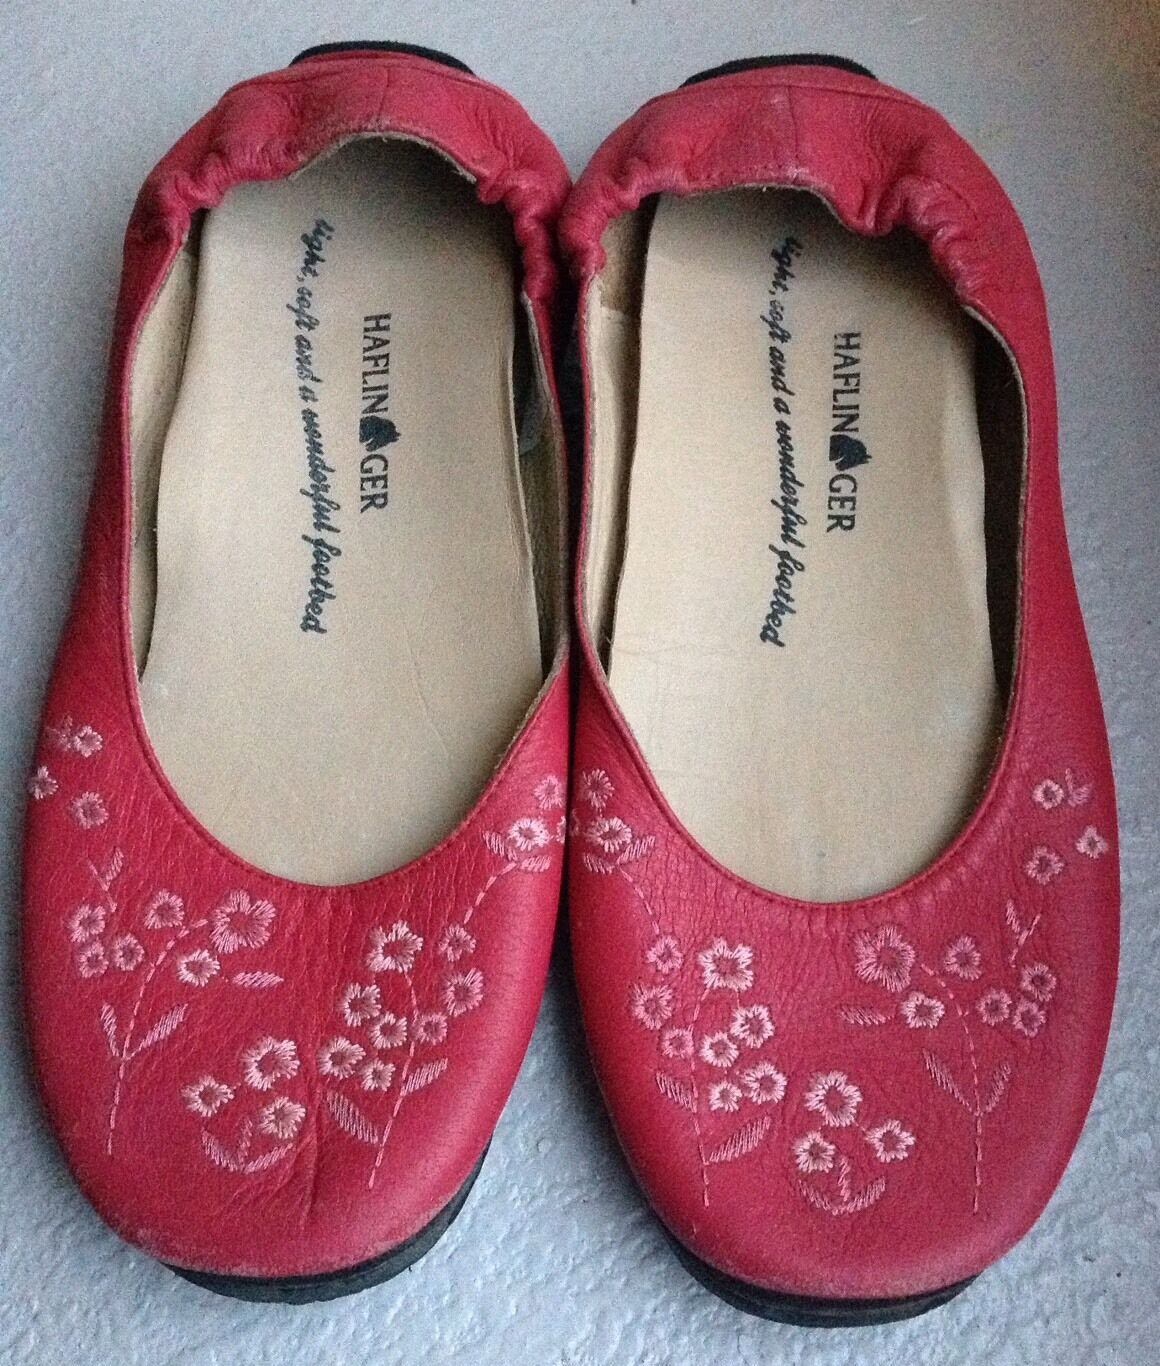 HAFLINGER Women's Embroidered Flower Ballet Flats shoes Pinks SZ 6